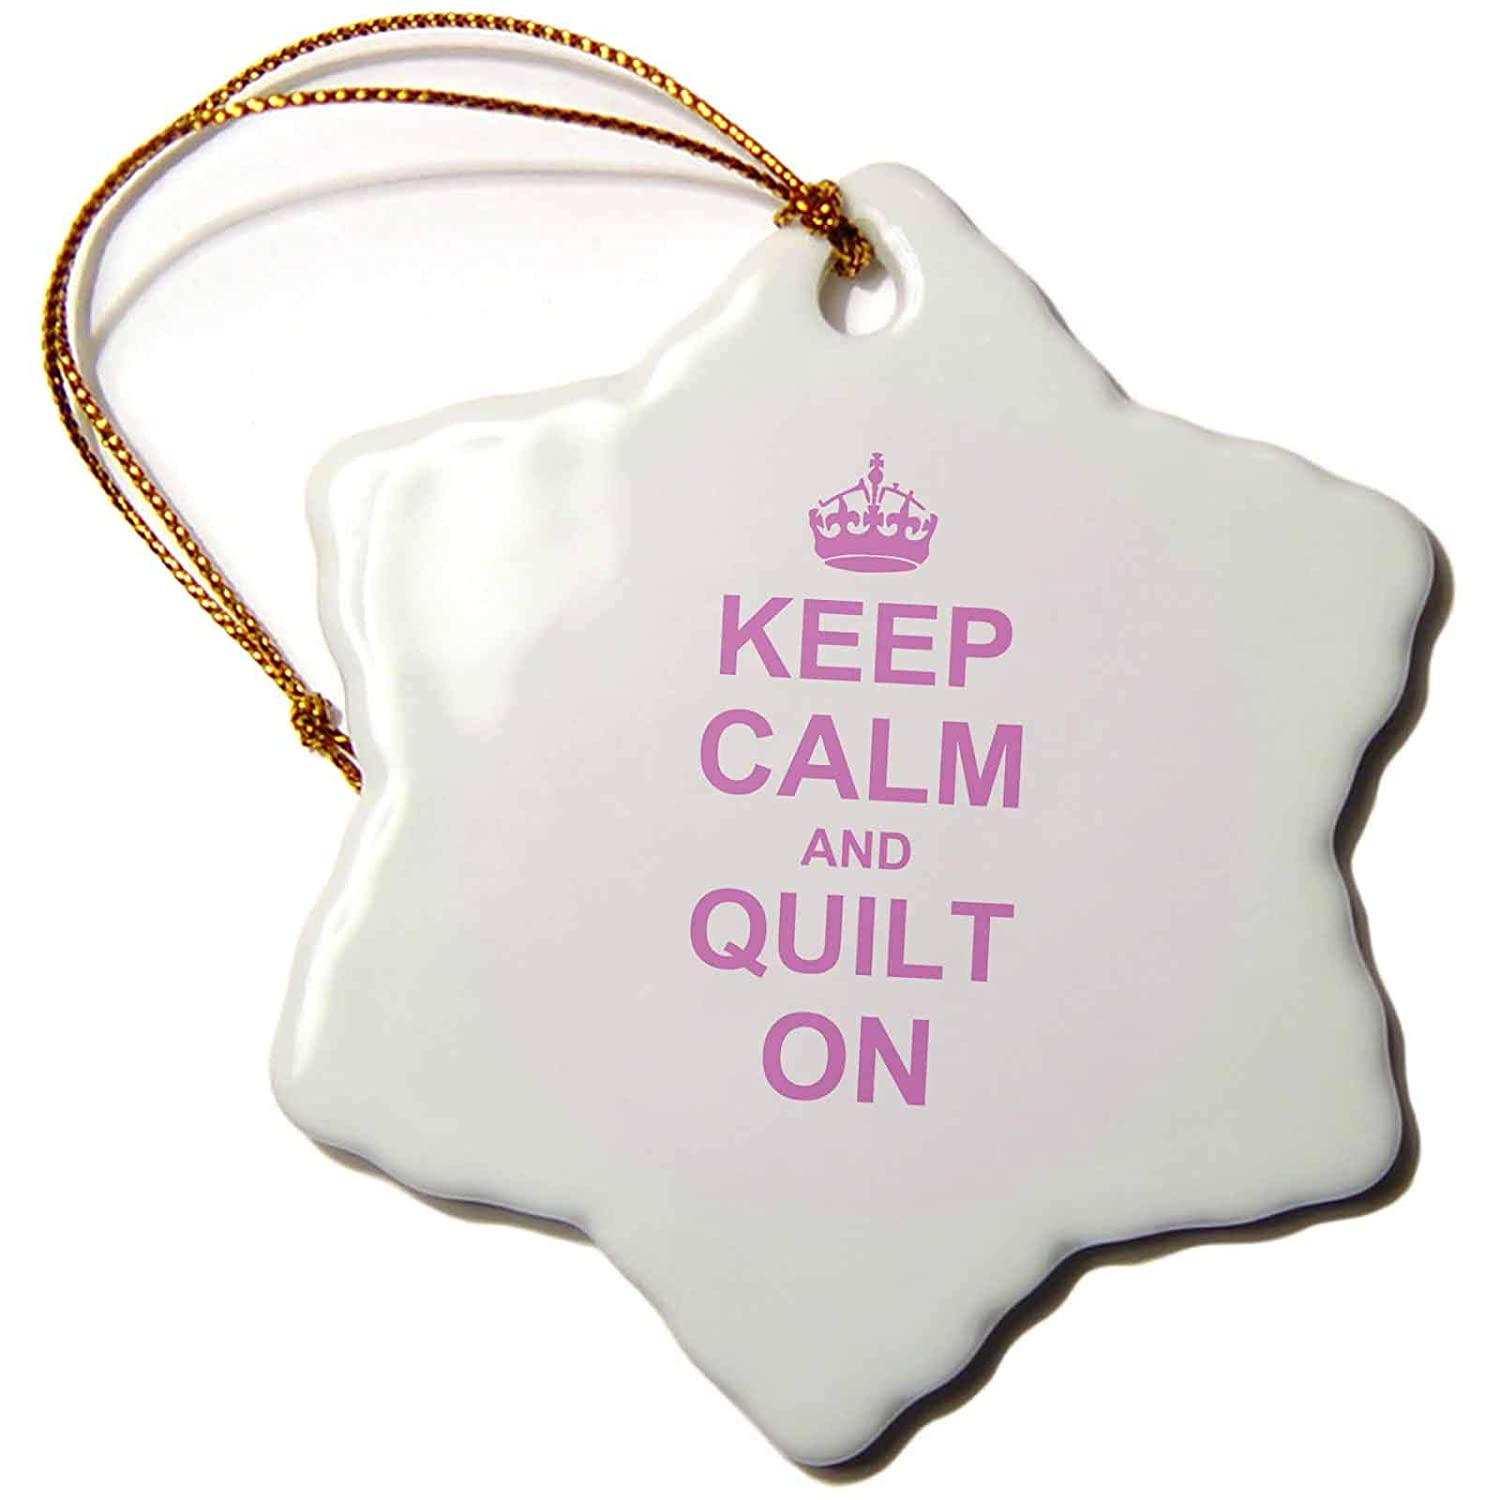 carry on quilting 3dRose InspirationzStore Typography Keep Calm and Quilt on 3 inch Snowflake Porcelain Ornament orn/_157760/_1 pink fun funny humor humorous Quilter gifts